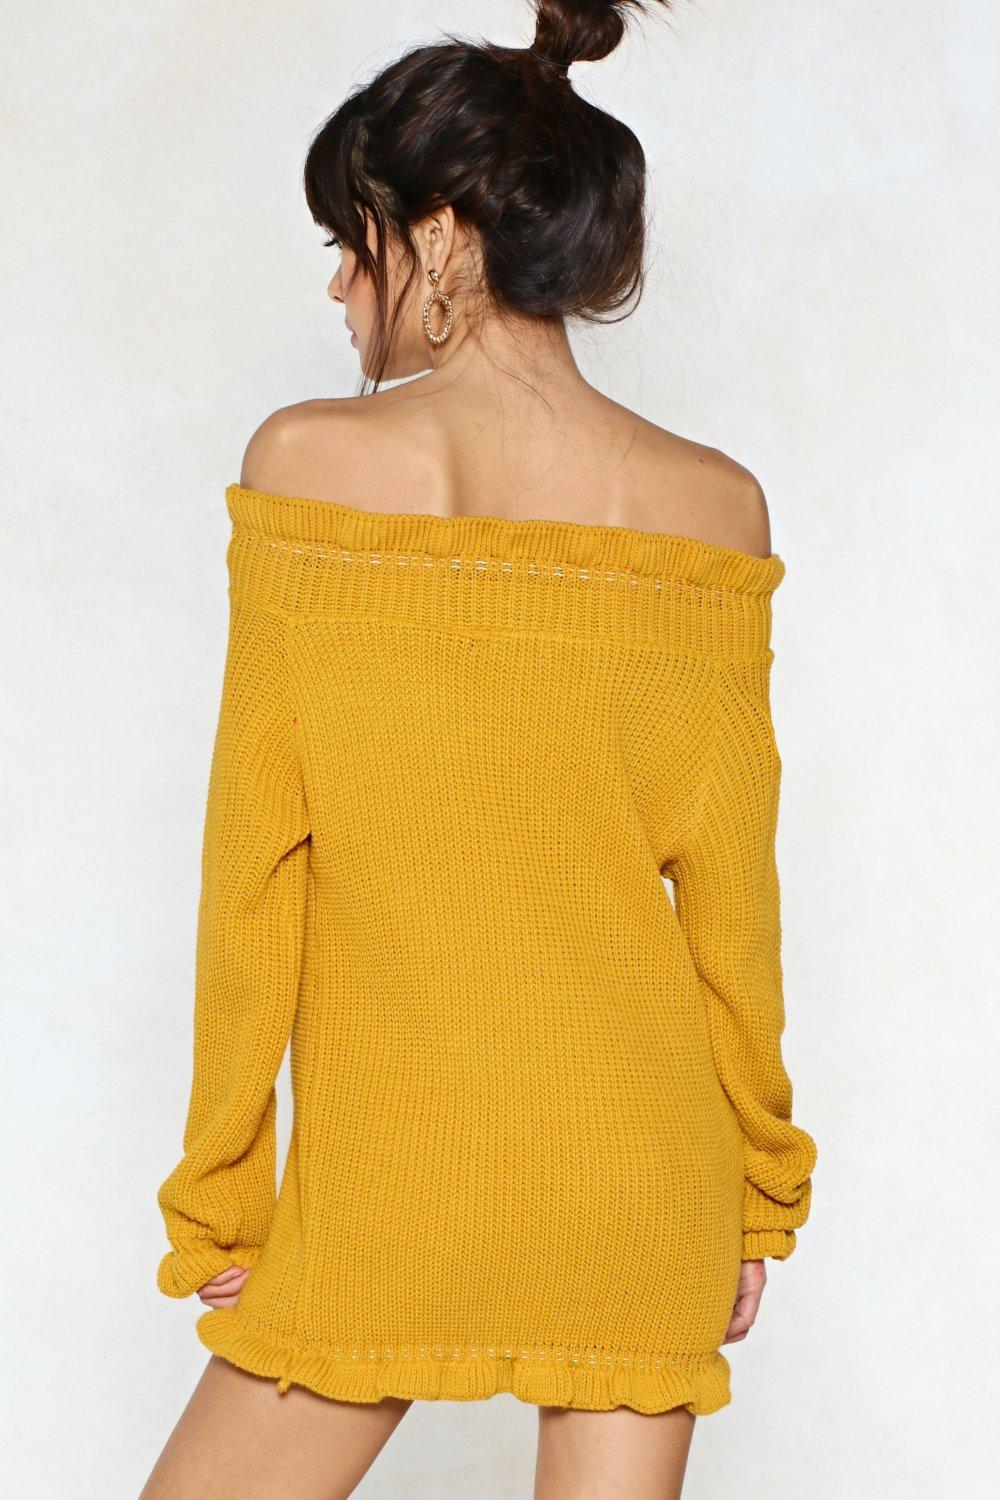 7b7f22e57 Nasty Gal Knit s Up To You Sweater Dress in Yellow - Lyst